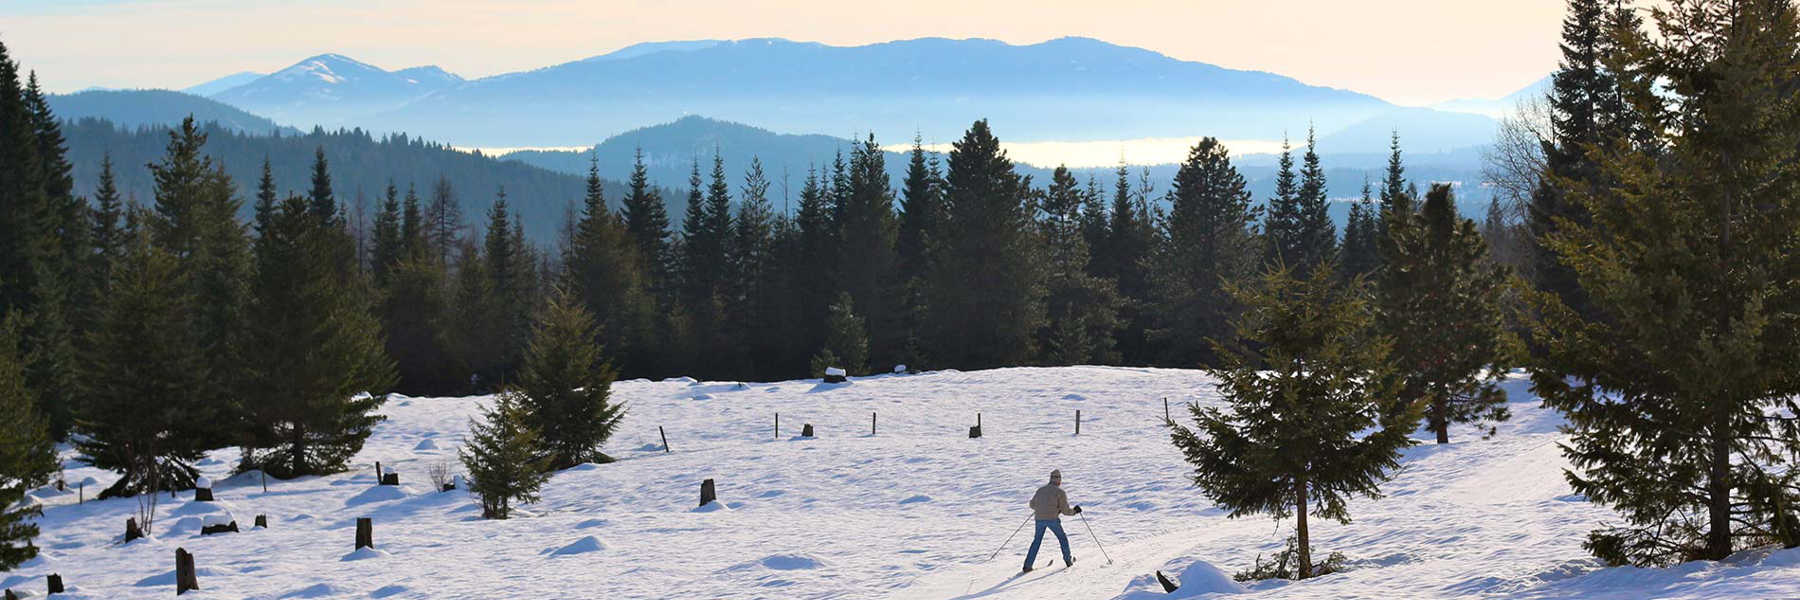 Things to do in Sandpoint